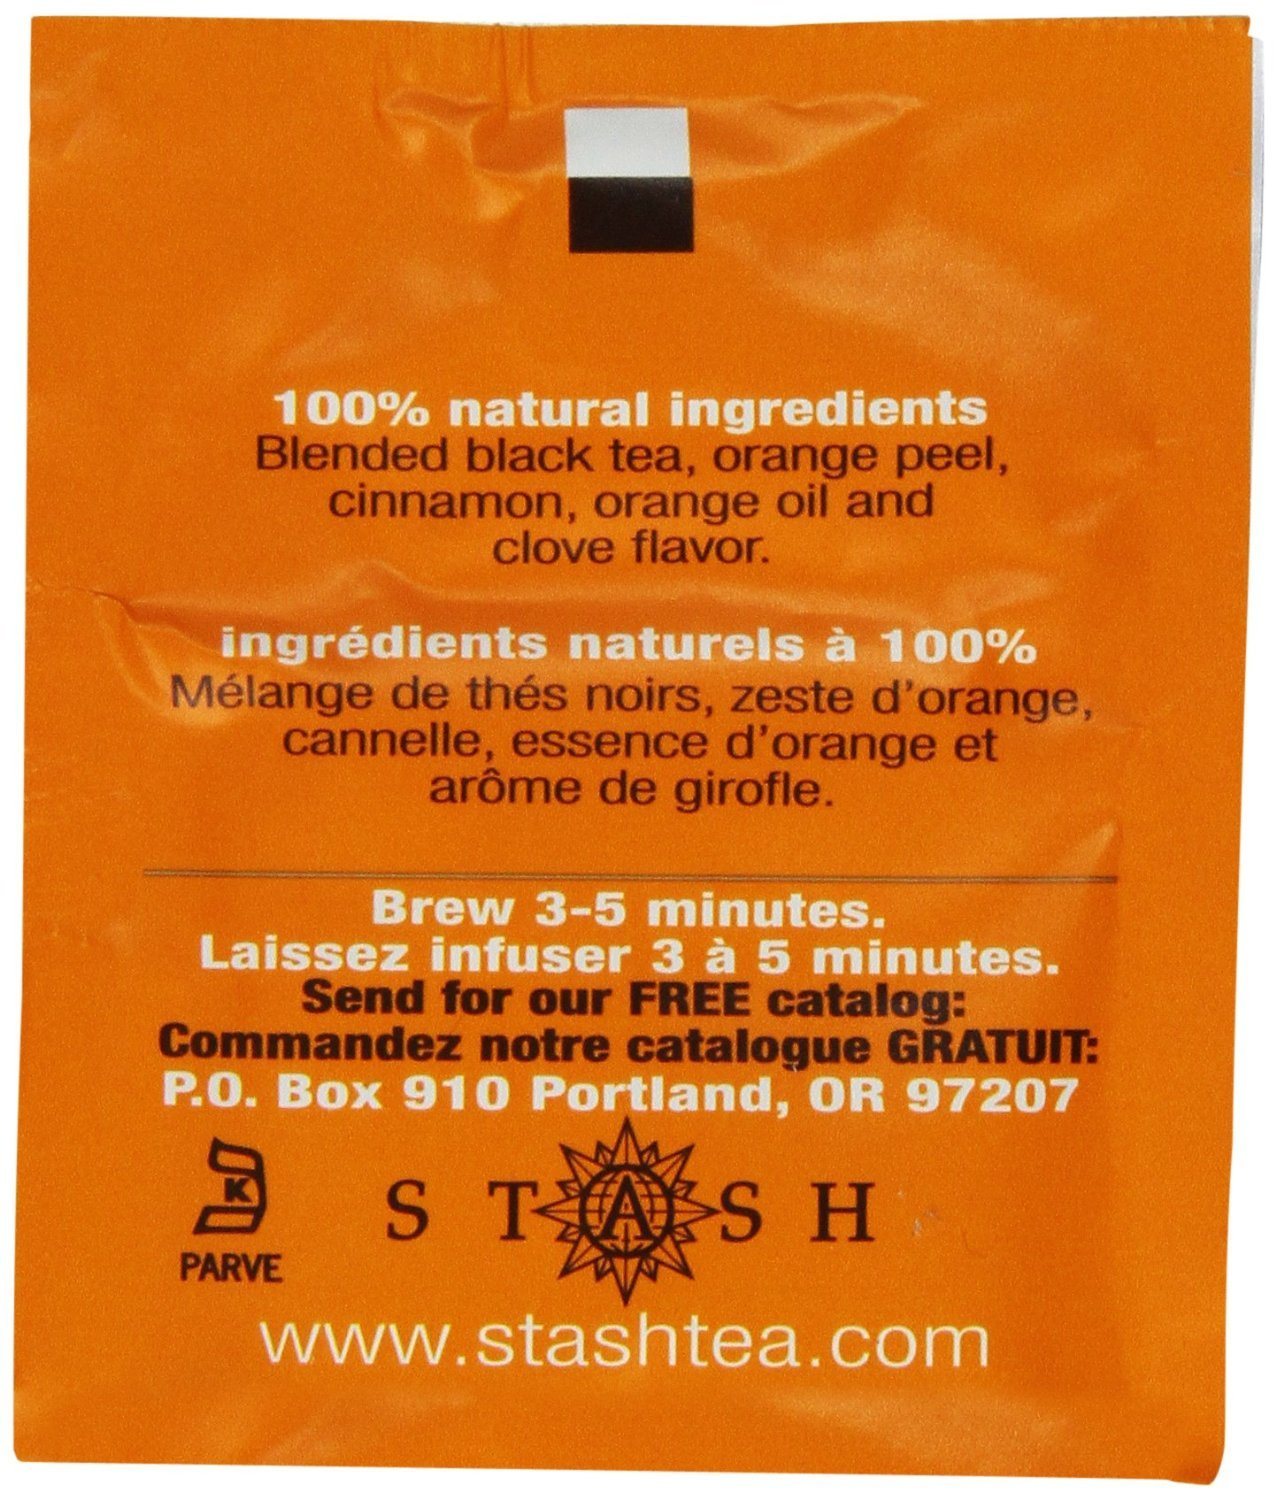 Stash Tea Orange Spice Black Tea 10 Count Tea Bags in Foil (Pack of 12) (packaging may vary) Individual Black Tea Bags for Use in Teapots Mugs or Cups, Brew Hot Tea or Iced Tea by Stash Tea (Image #5)